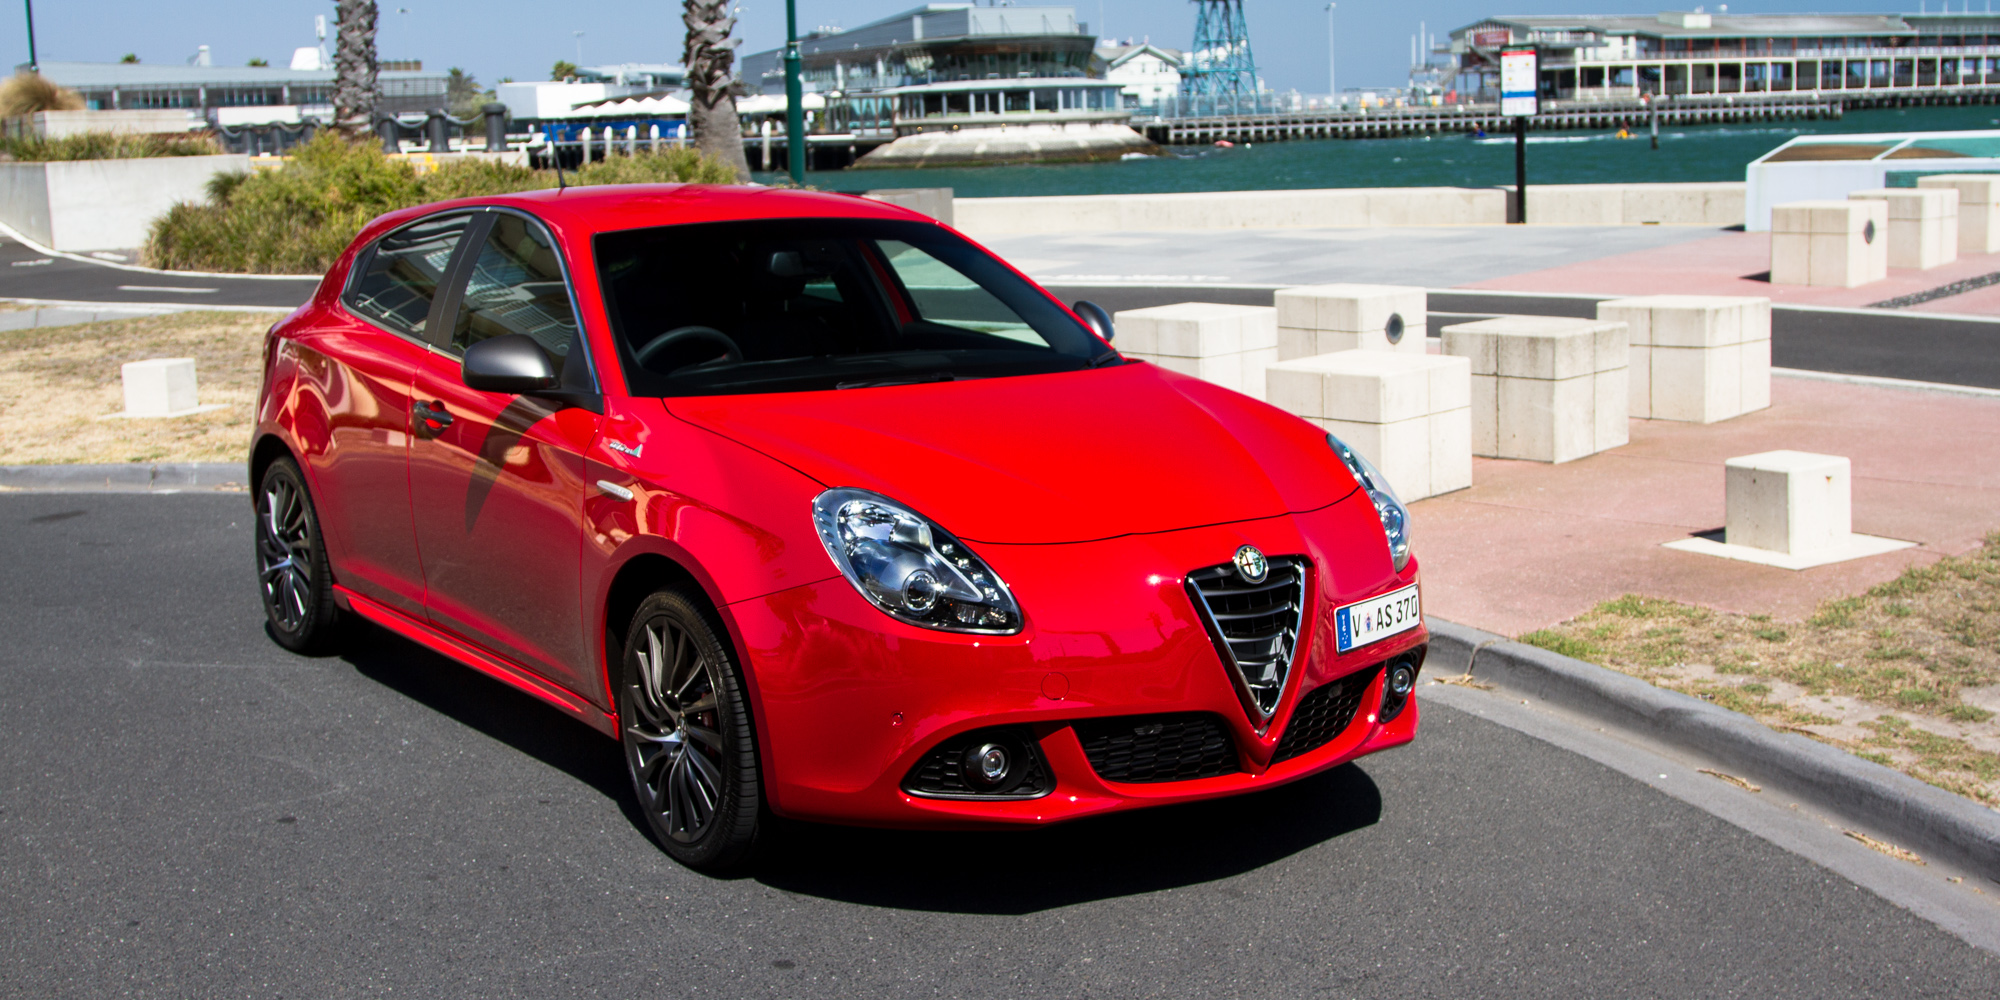 2015 alfa romeo giulietta distinctive qv line review photos caradvice. Black Bedroom Furniture Sets. Home Design Ideas